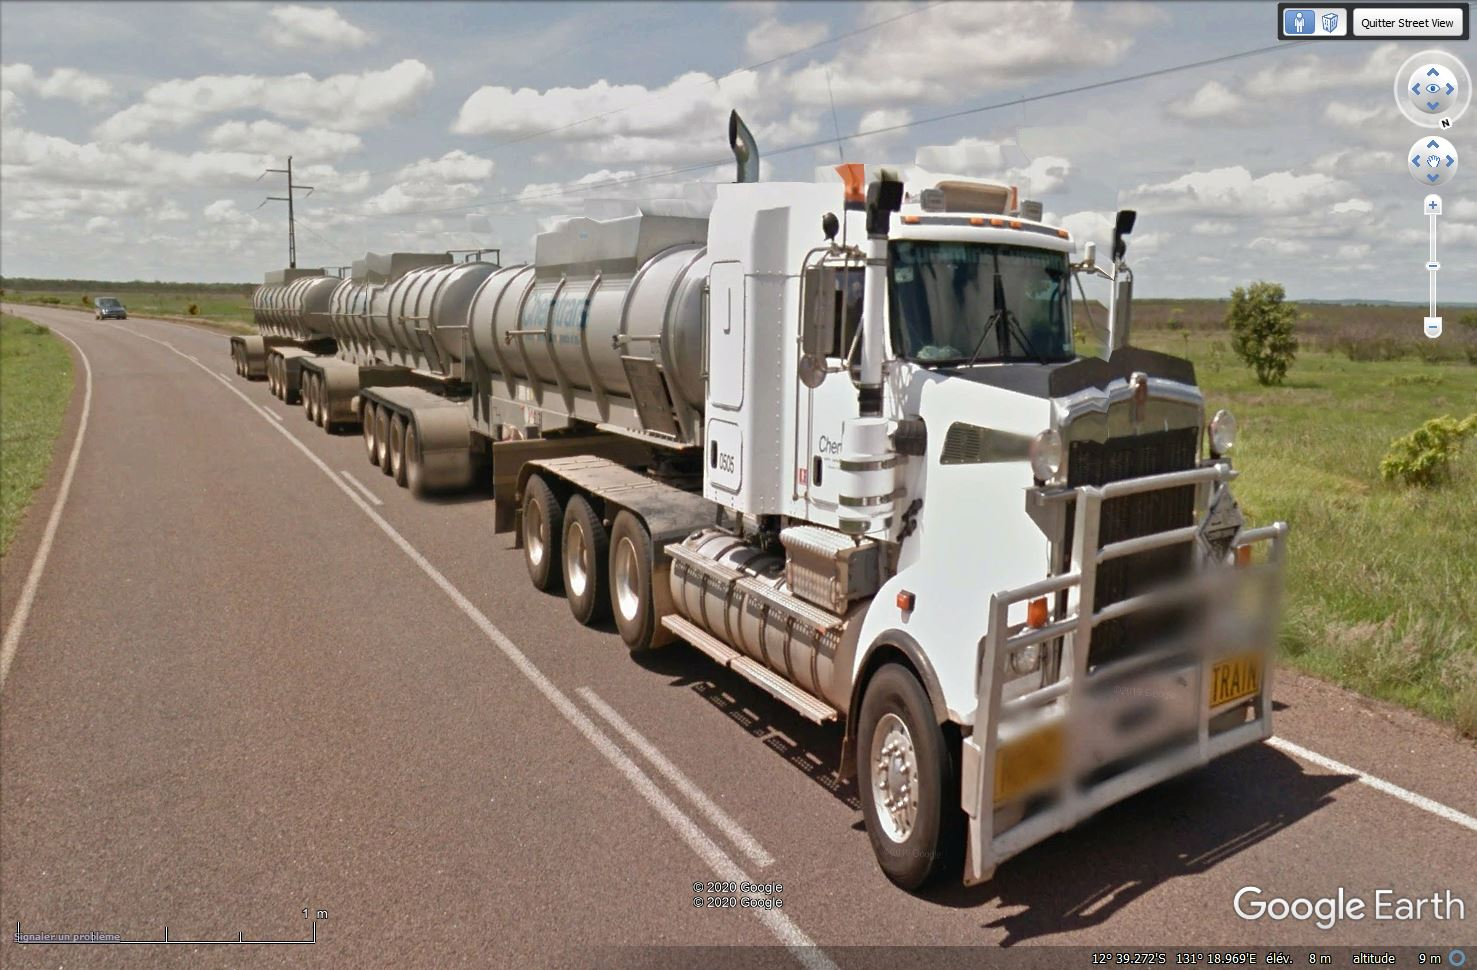 Camions australiens (road trains) - Page 6 Tsge1366